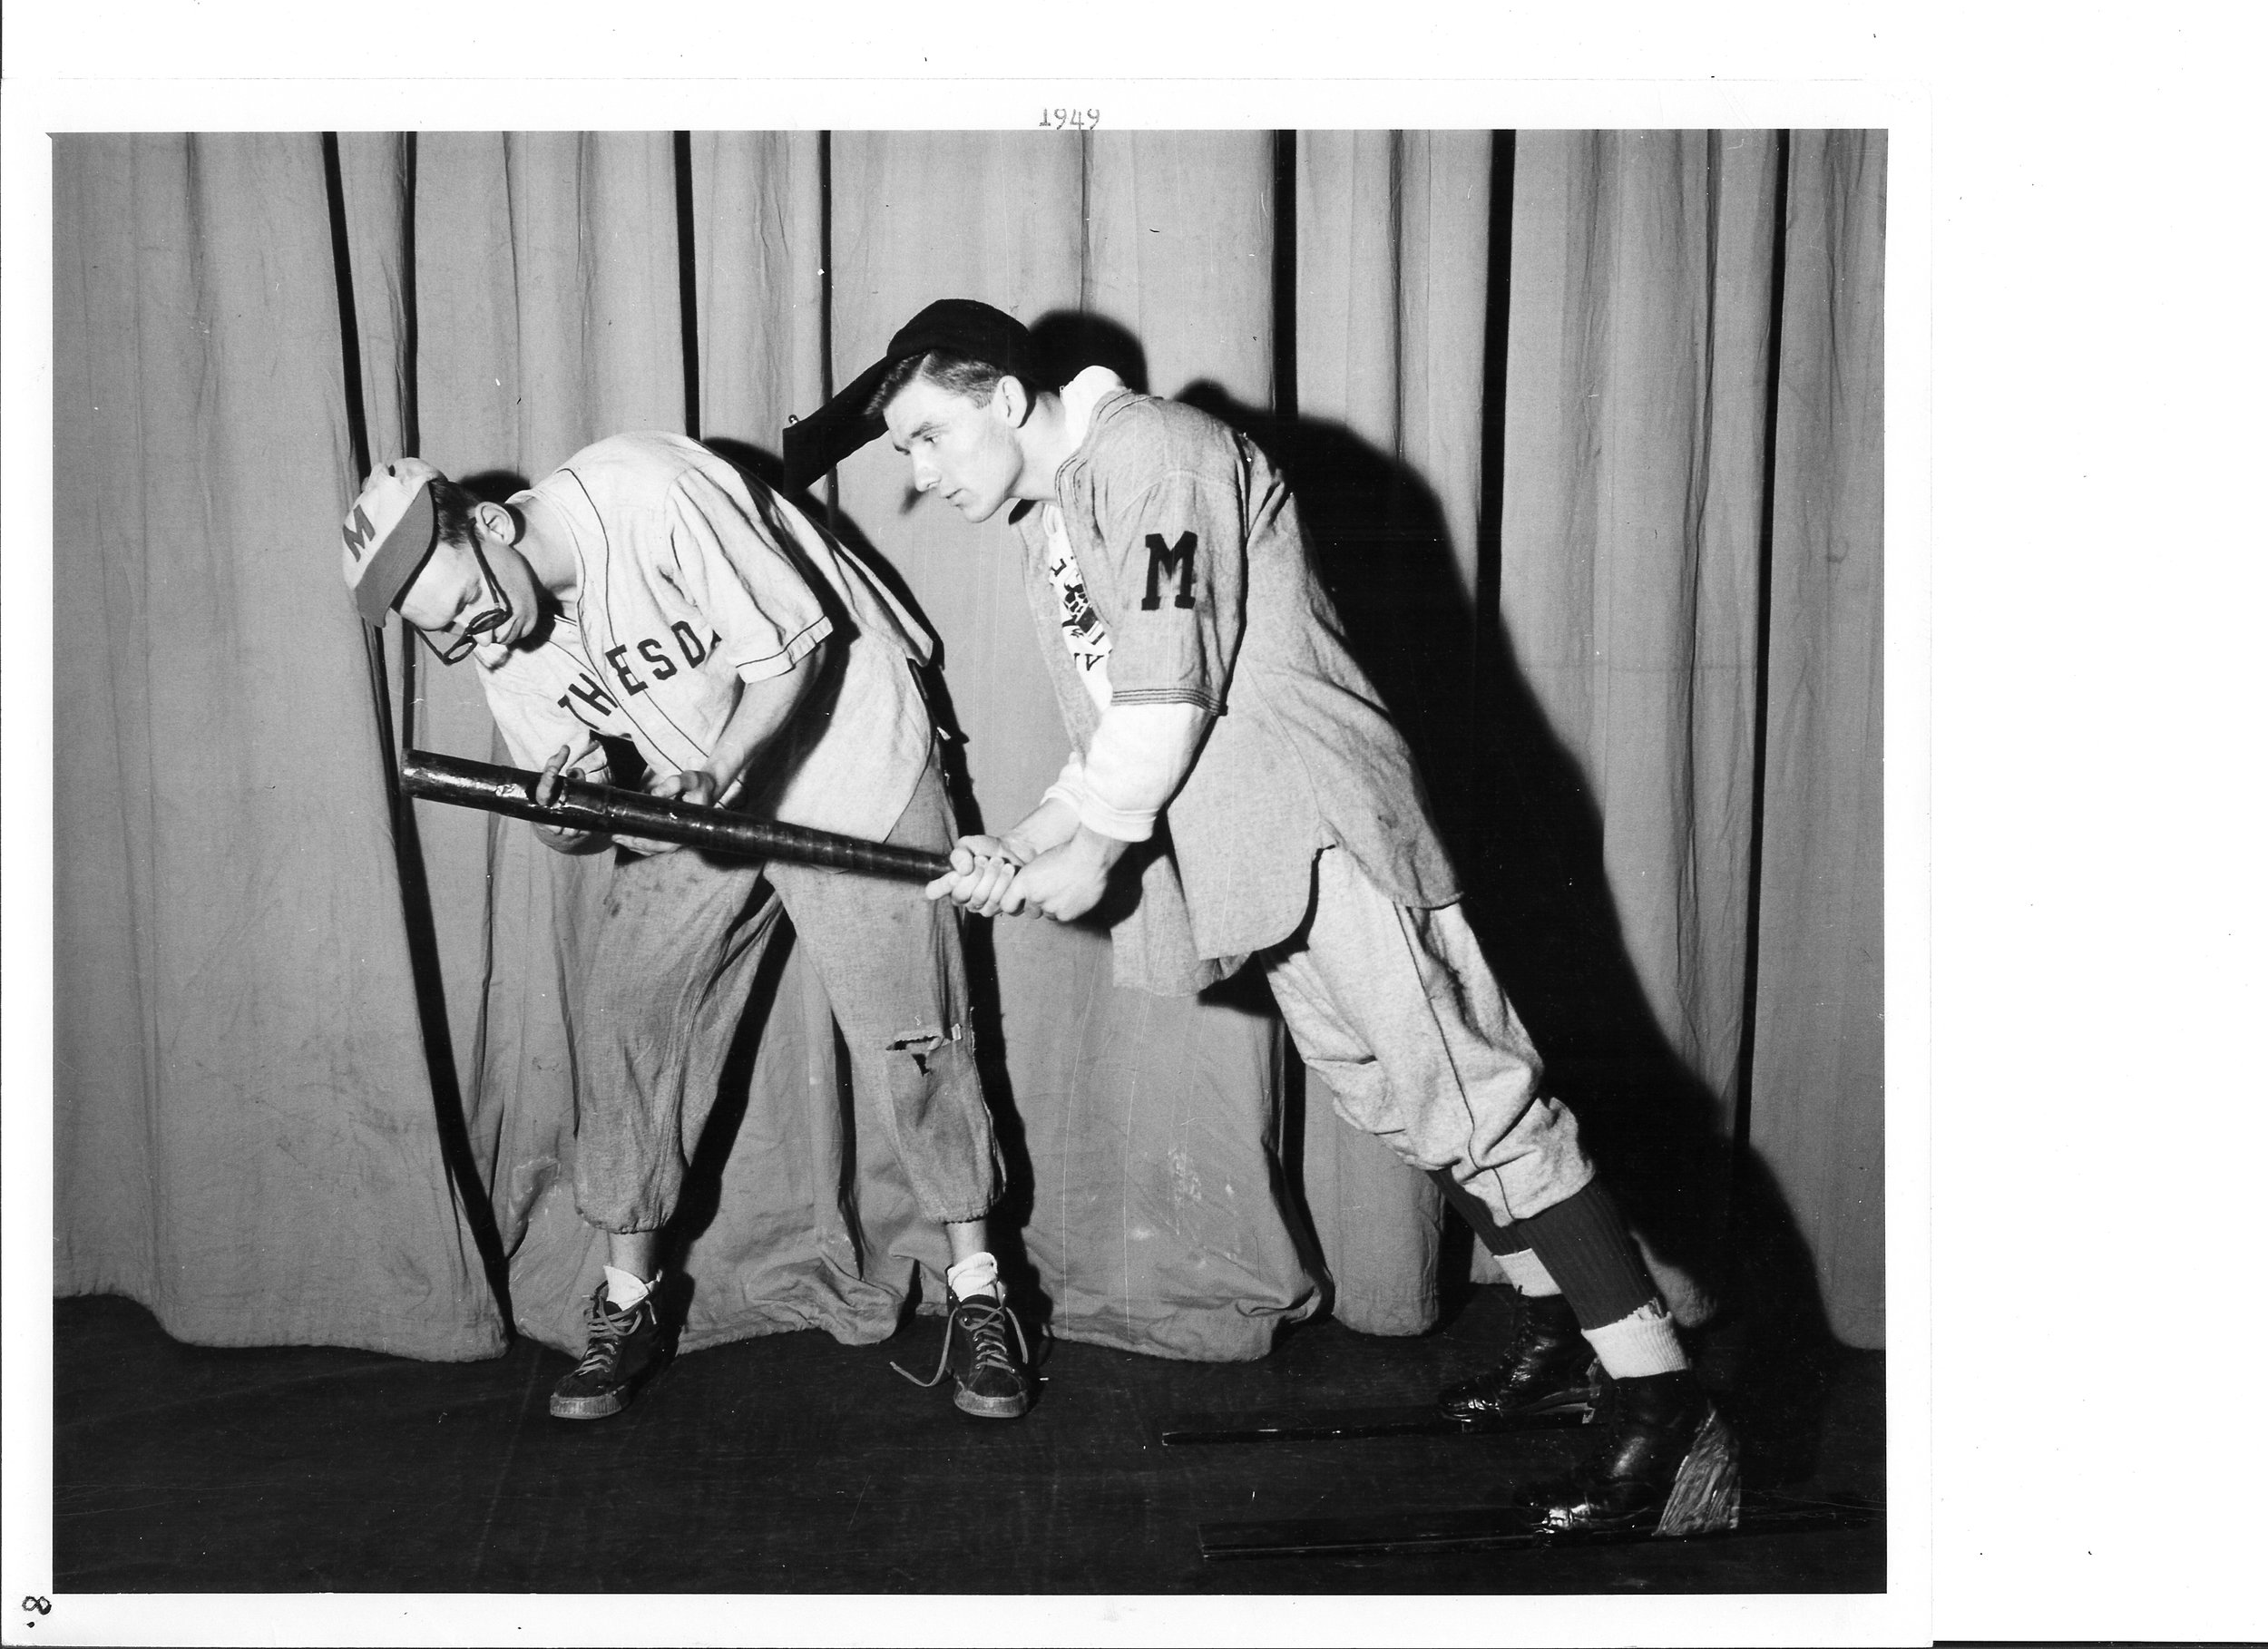 1949 'Casey at the Bat' l to r Rolf Scovell and Walter Clark.jpg